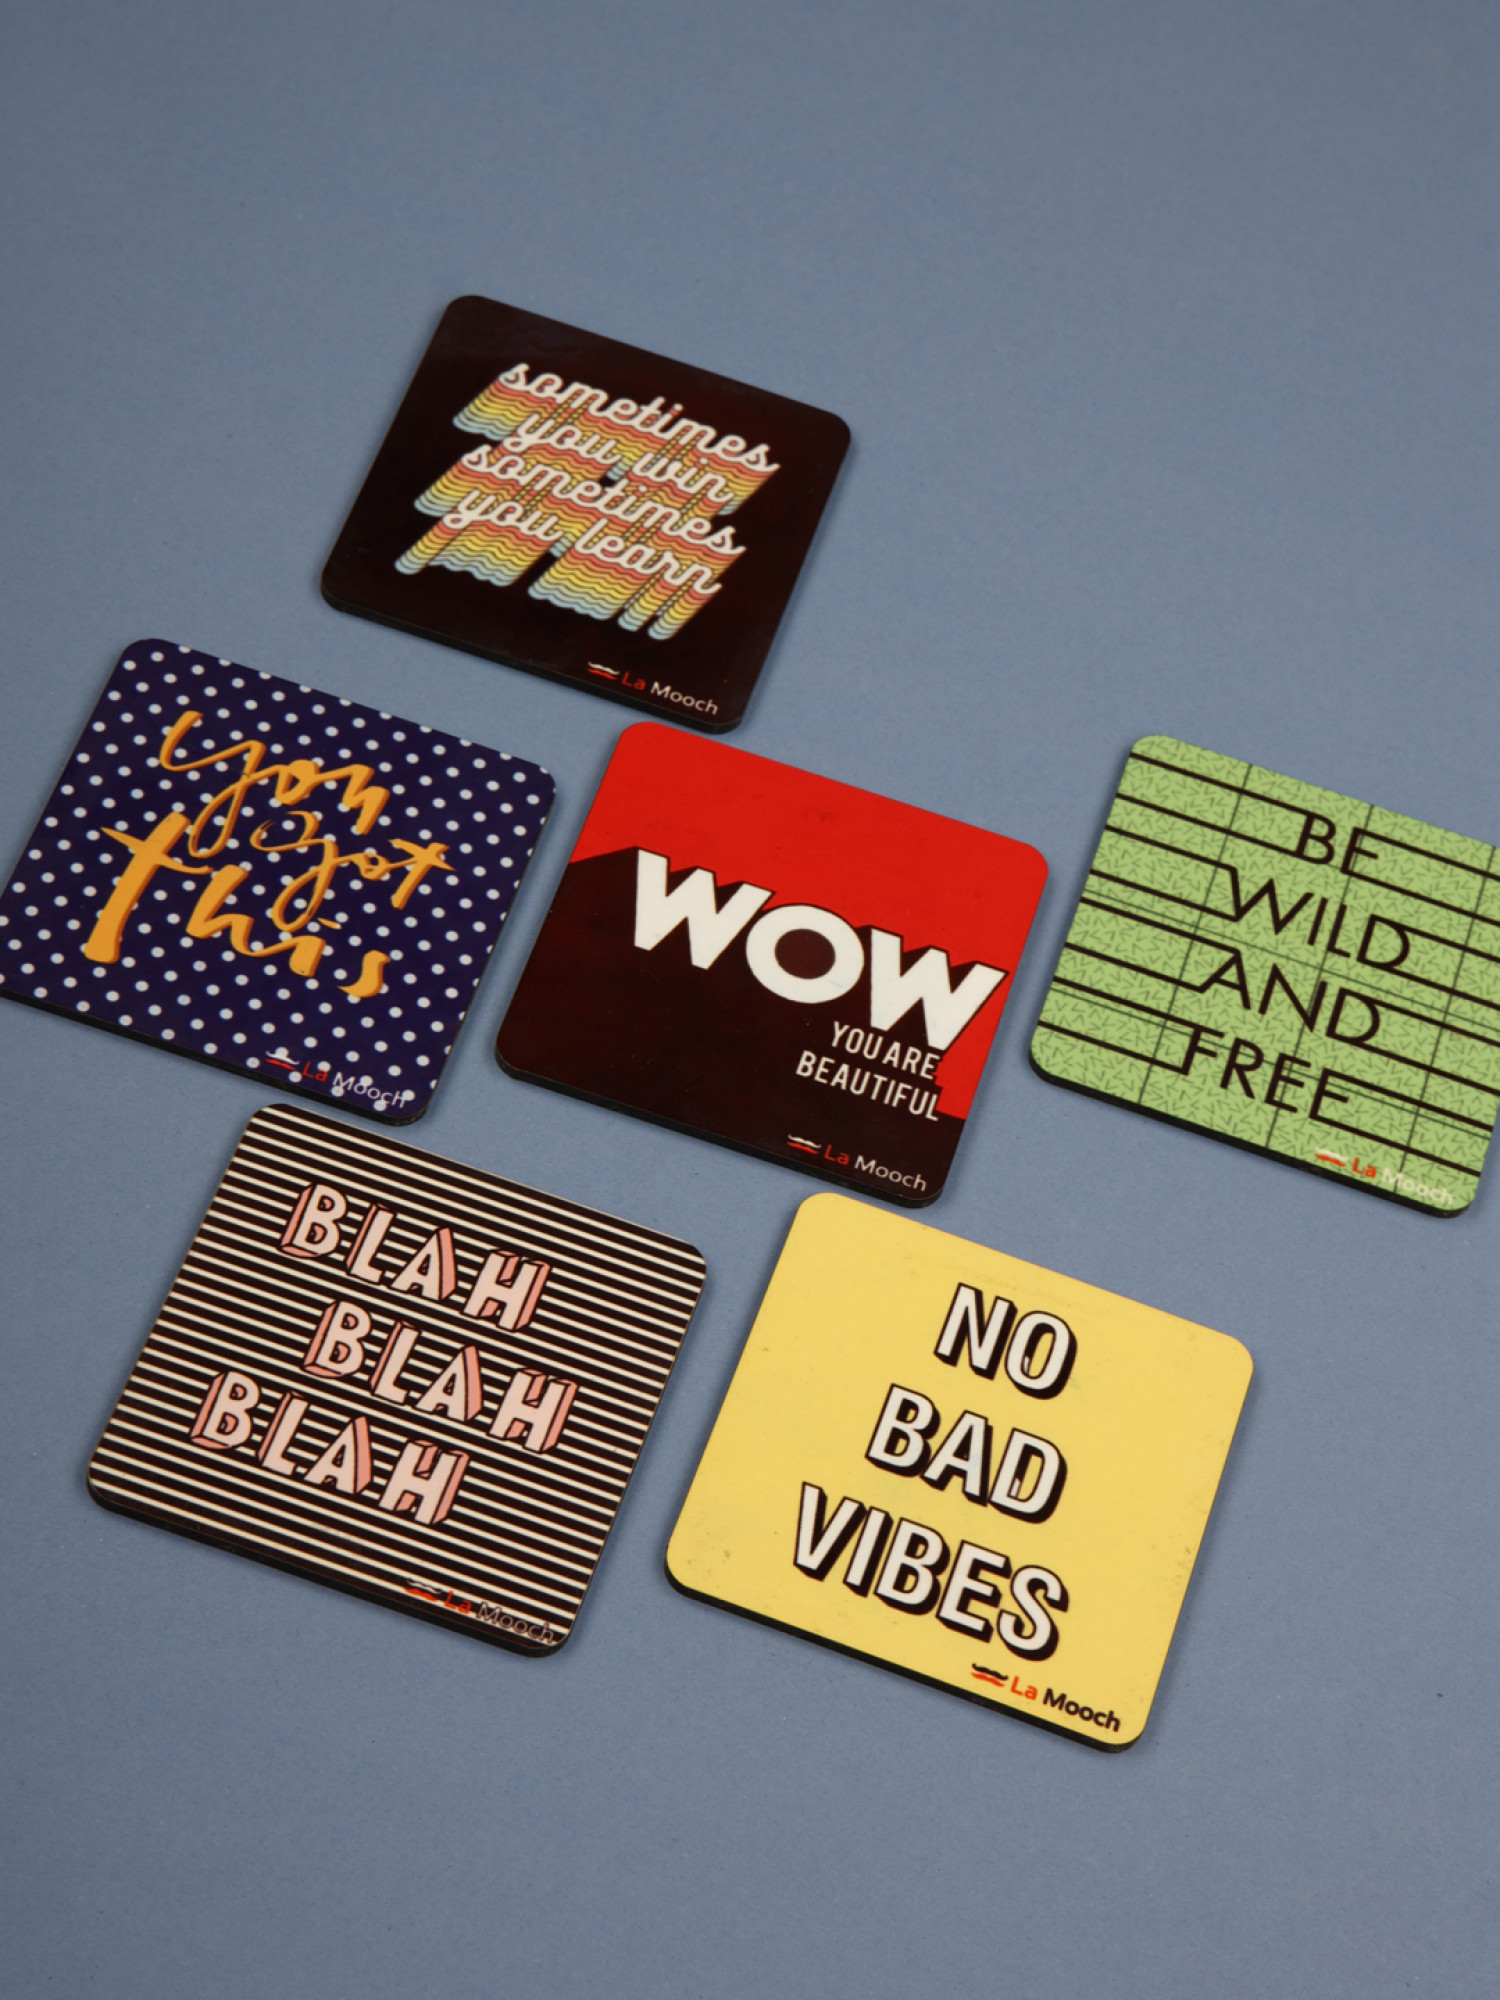 Designer Wooden Coaster Set of  6, WoW Quotes